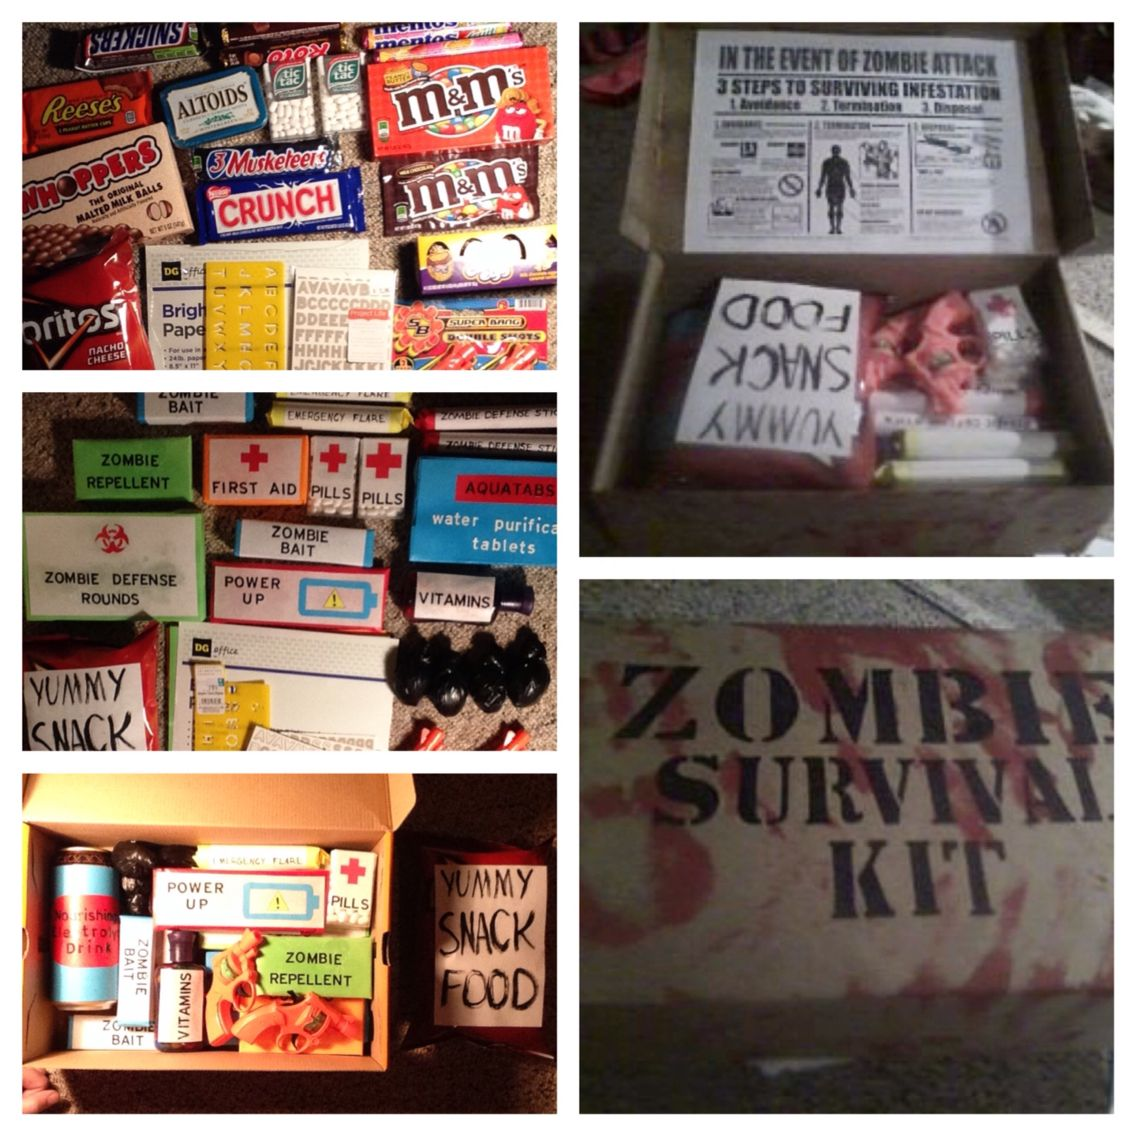 Zombie Survival Kit For The Boyfriend's Birthday!!! Loved It!!